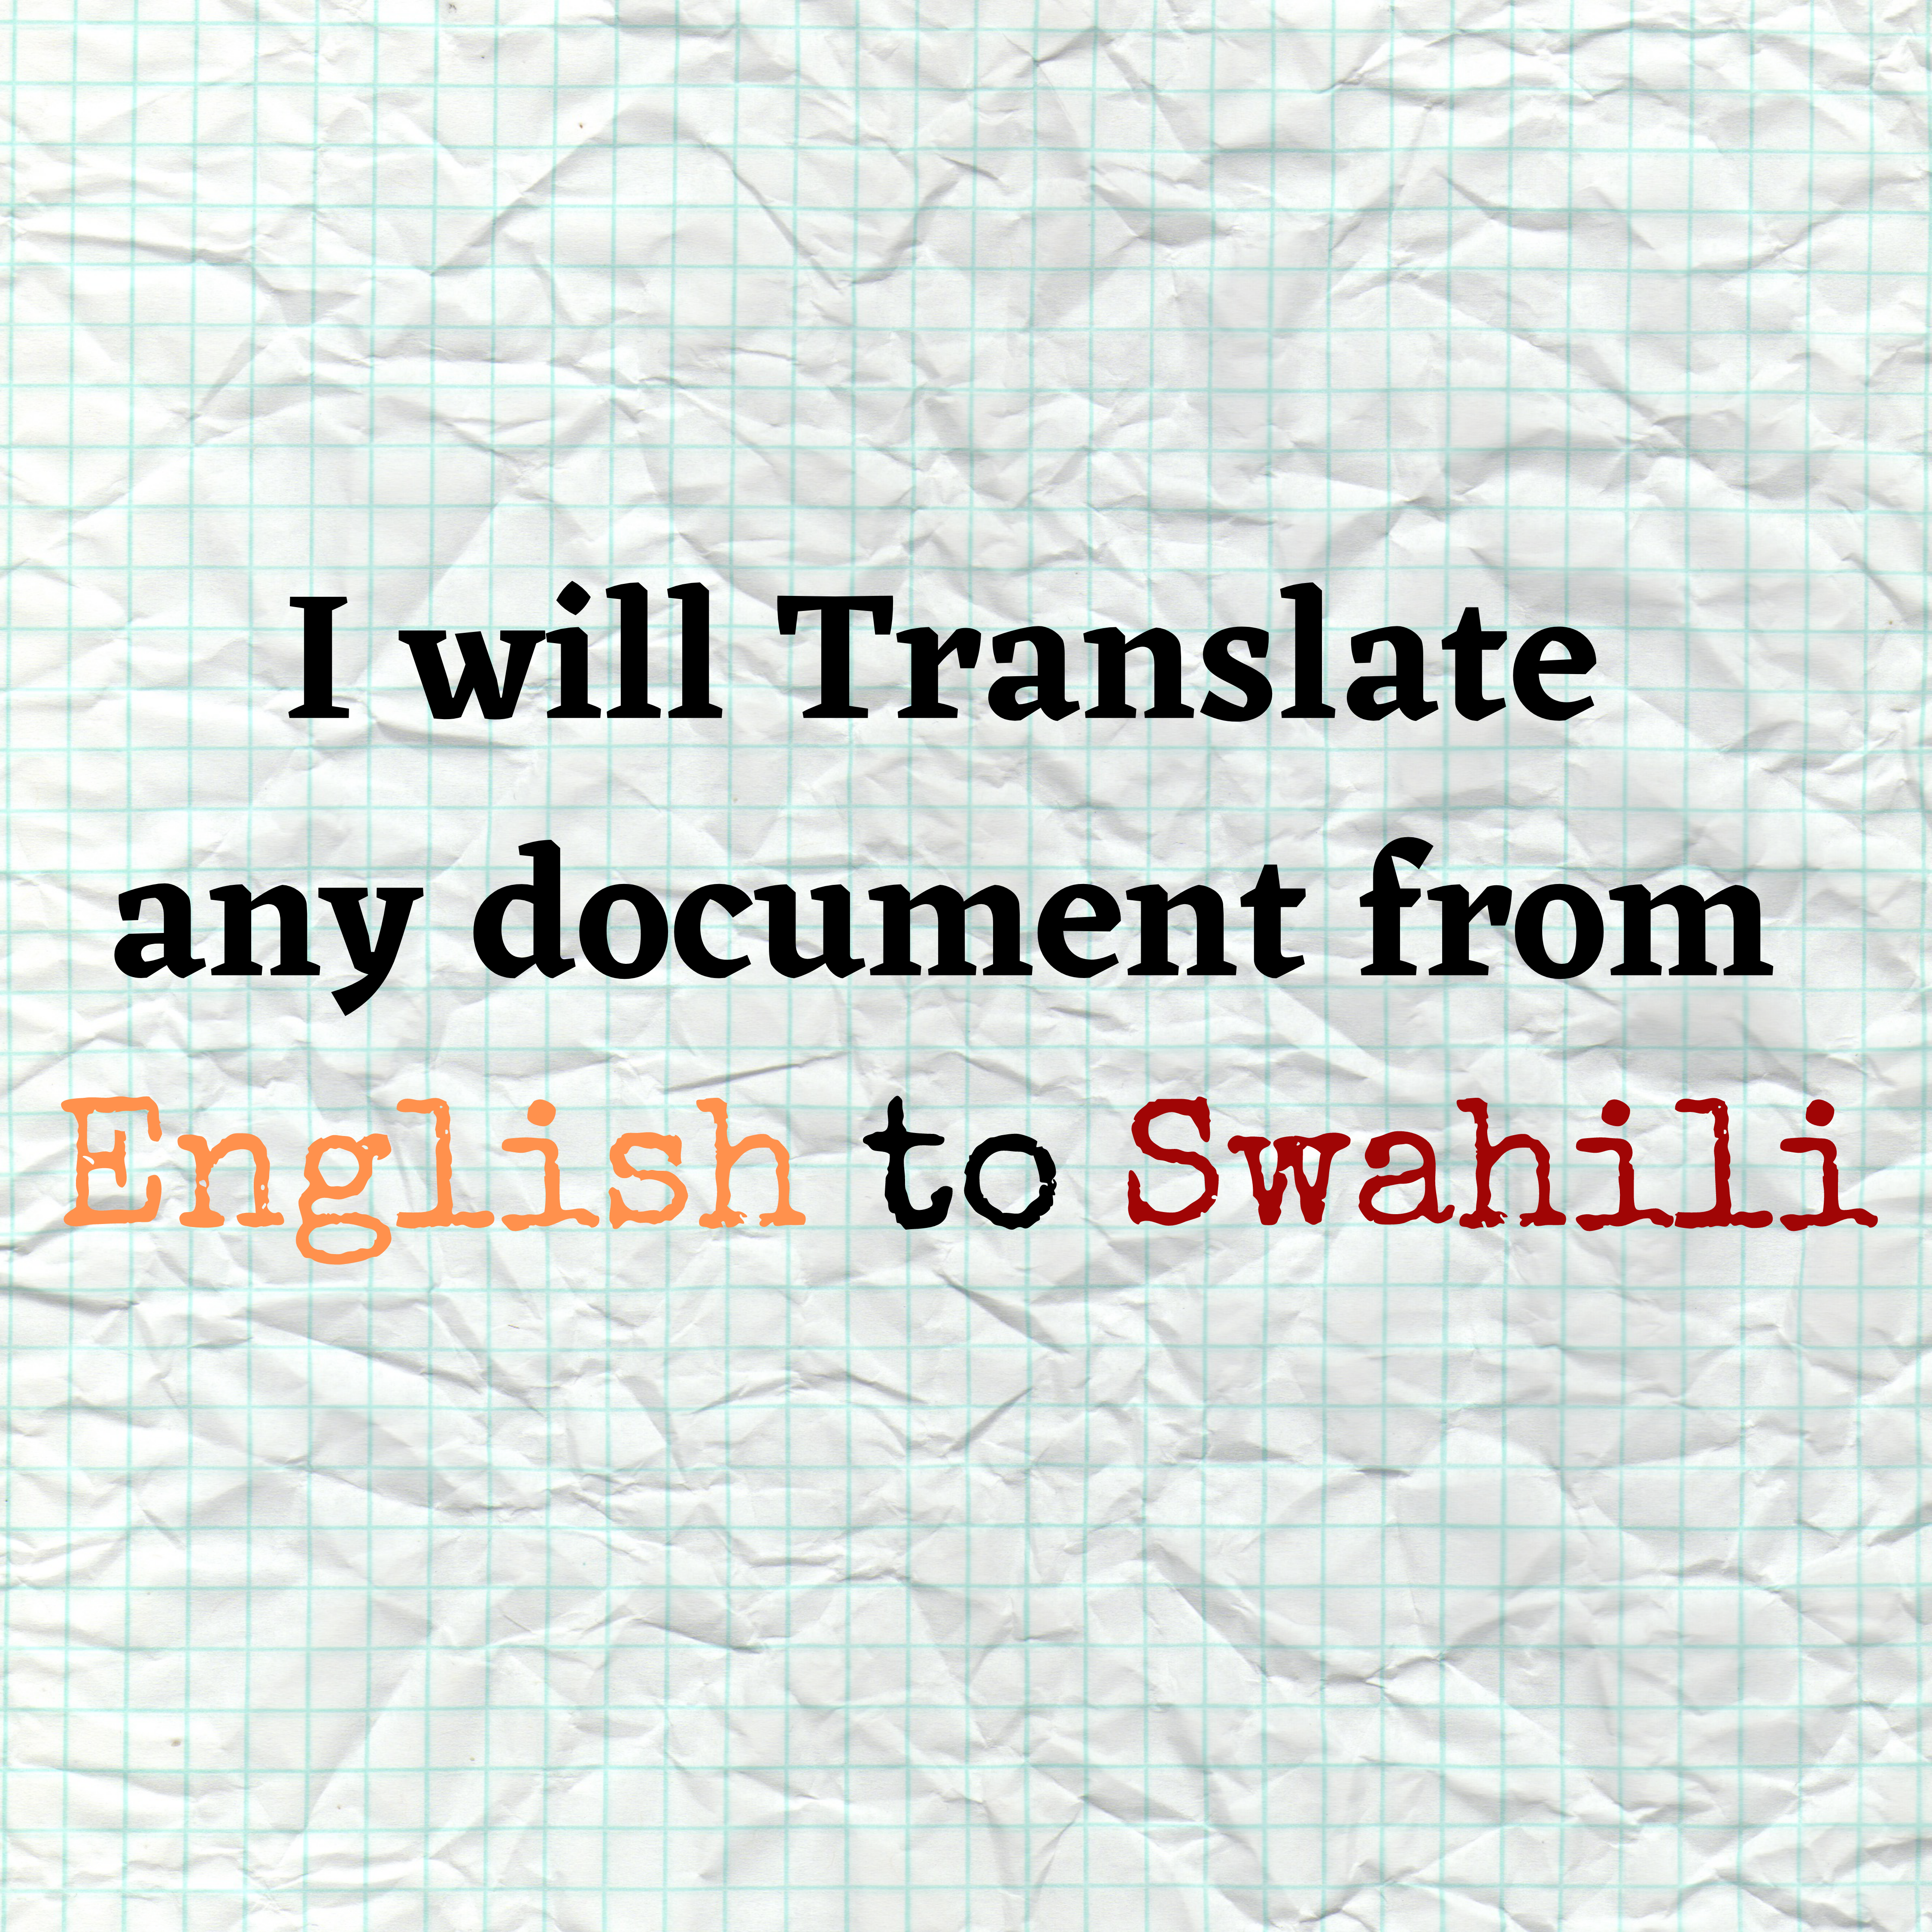 I will translate any document from English to Swahili